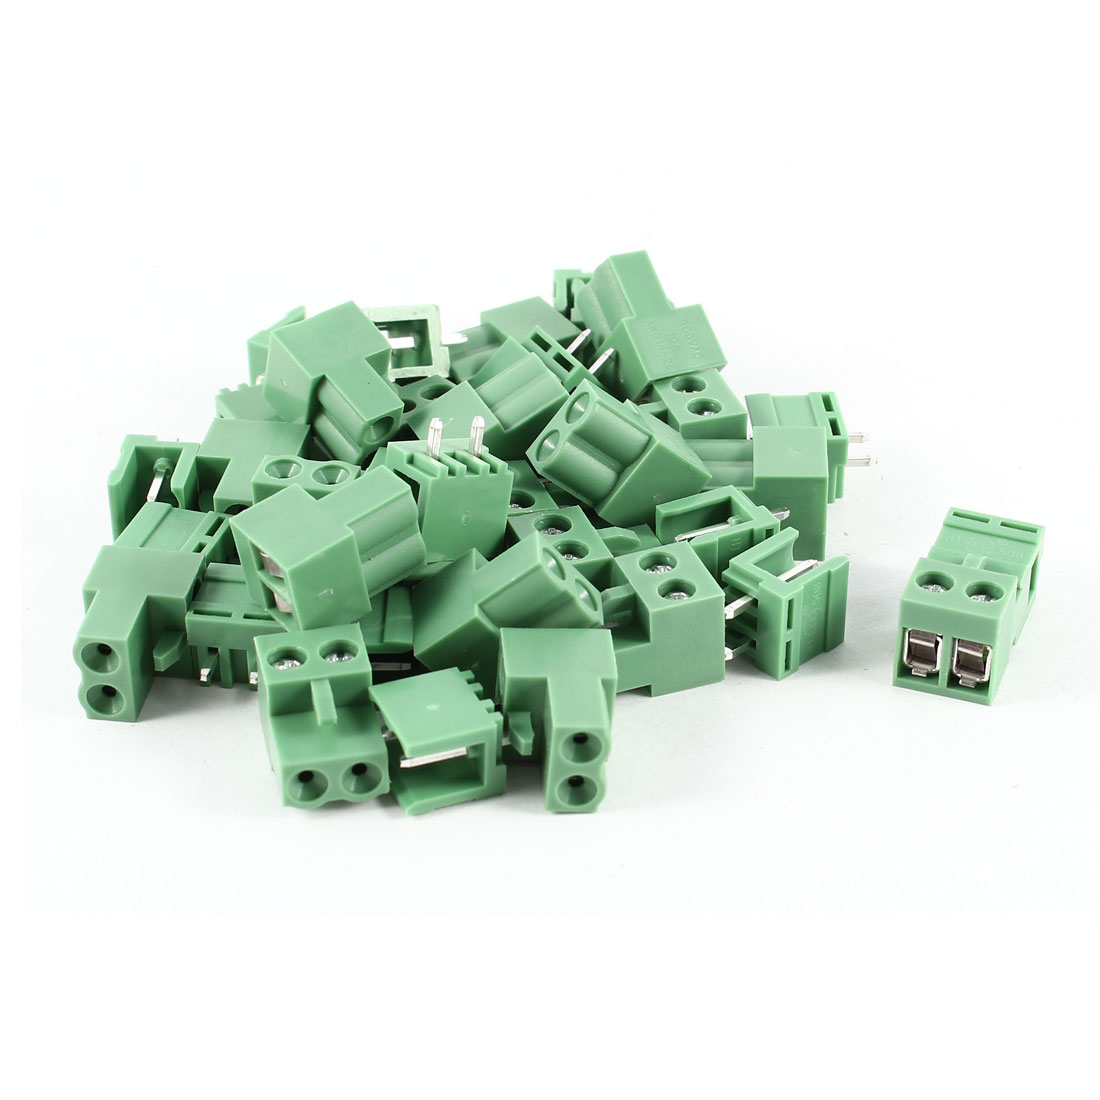 20 Pcs Green HT5.08 HT508K 2 Position 5.08mm Screw Pluggable Terminal Block Connectors 300V 10A